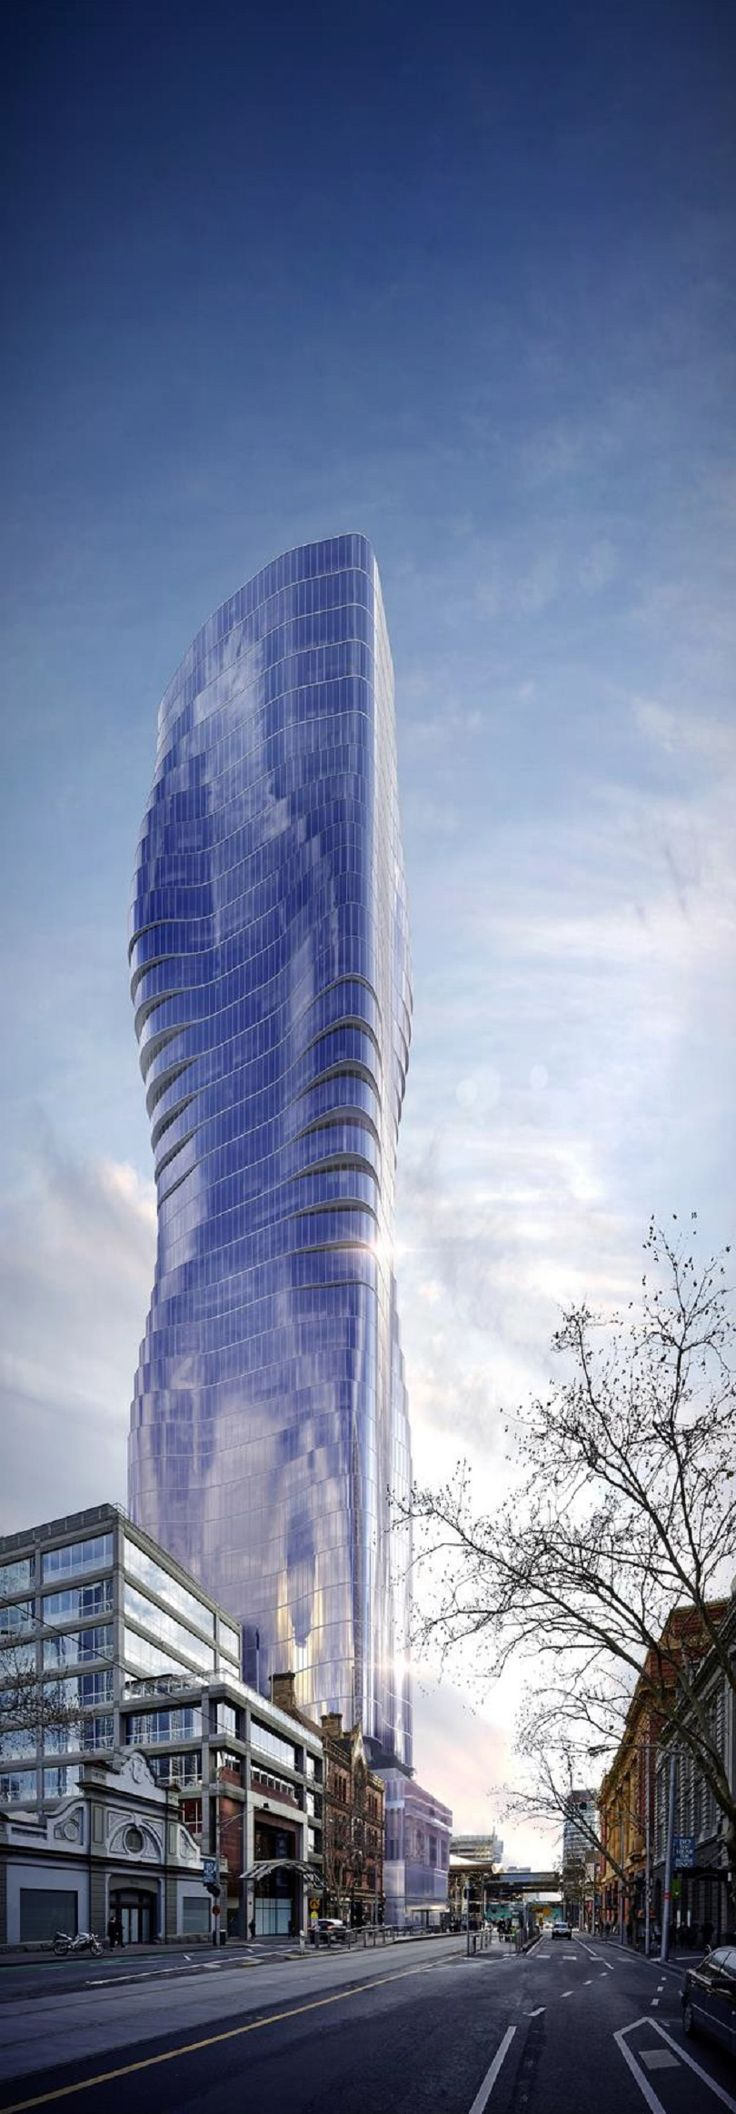 This incredible 68-storey skyscraper will soon be one of the tallest buildings in Melbourne | Business Insider